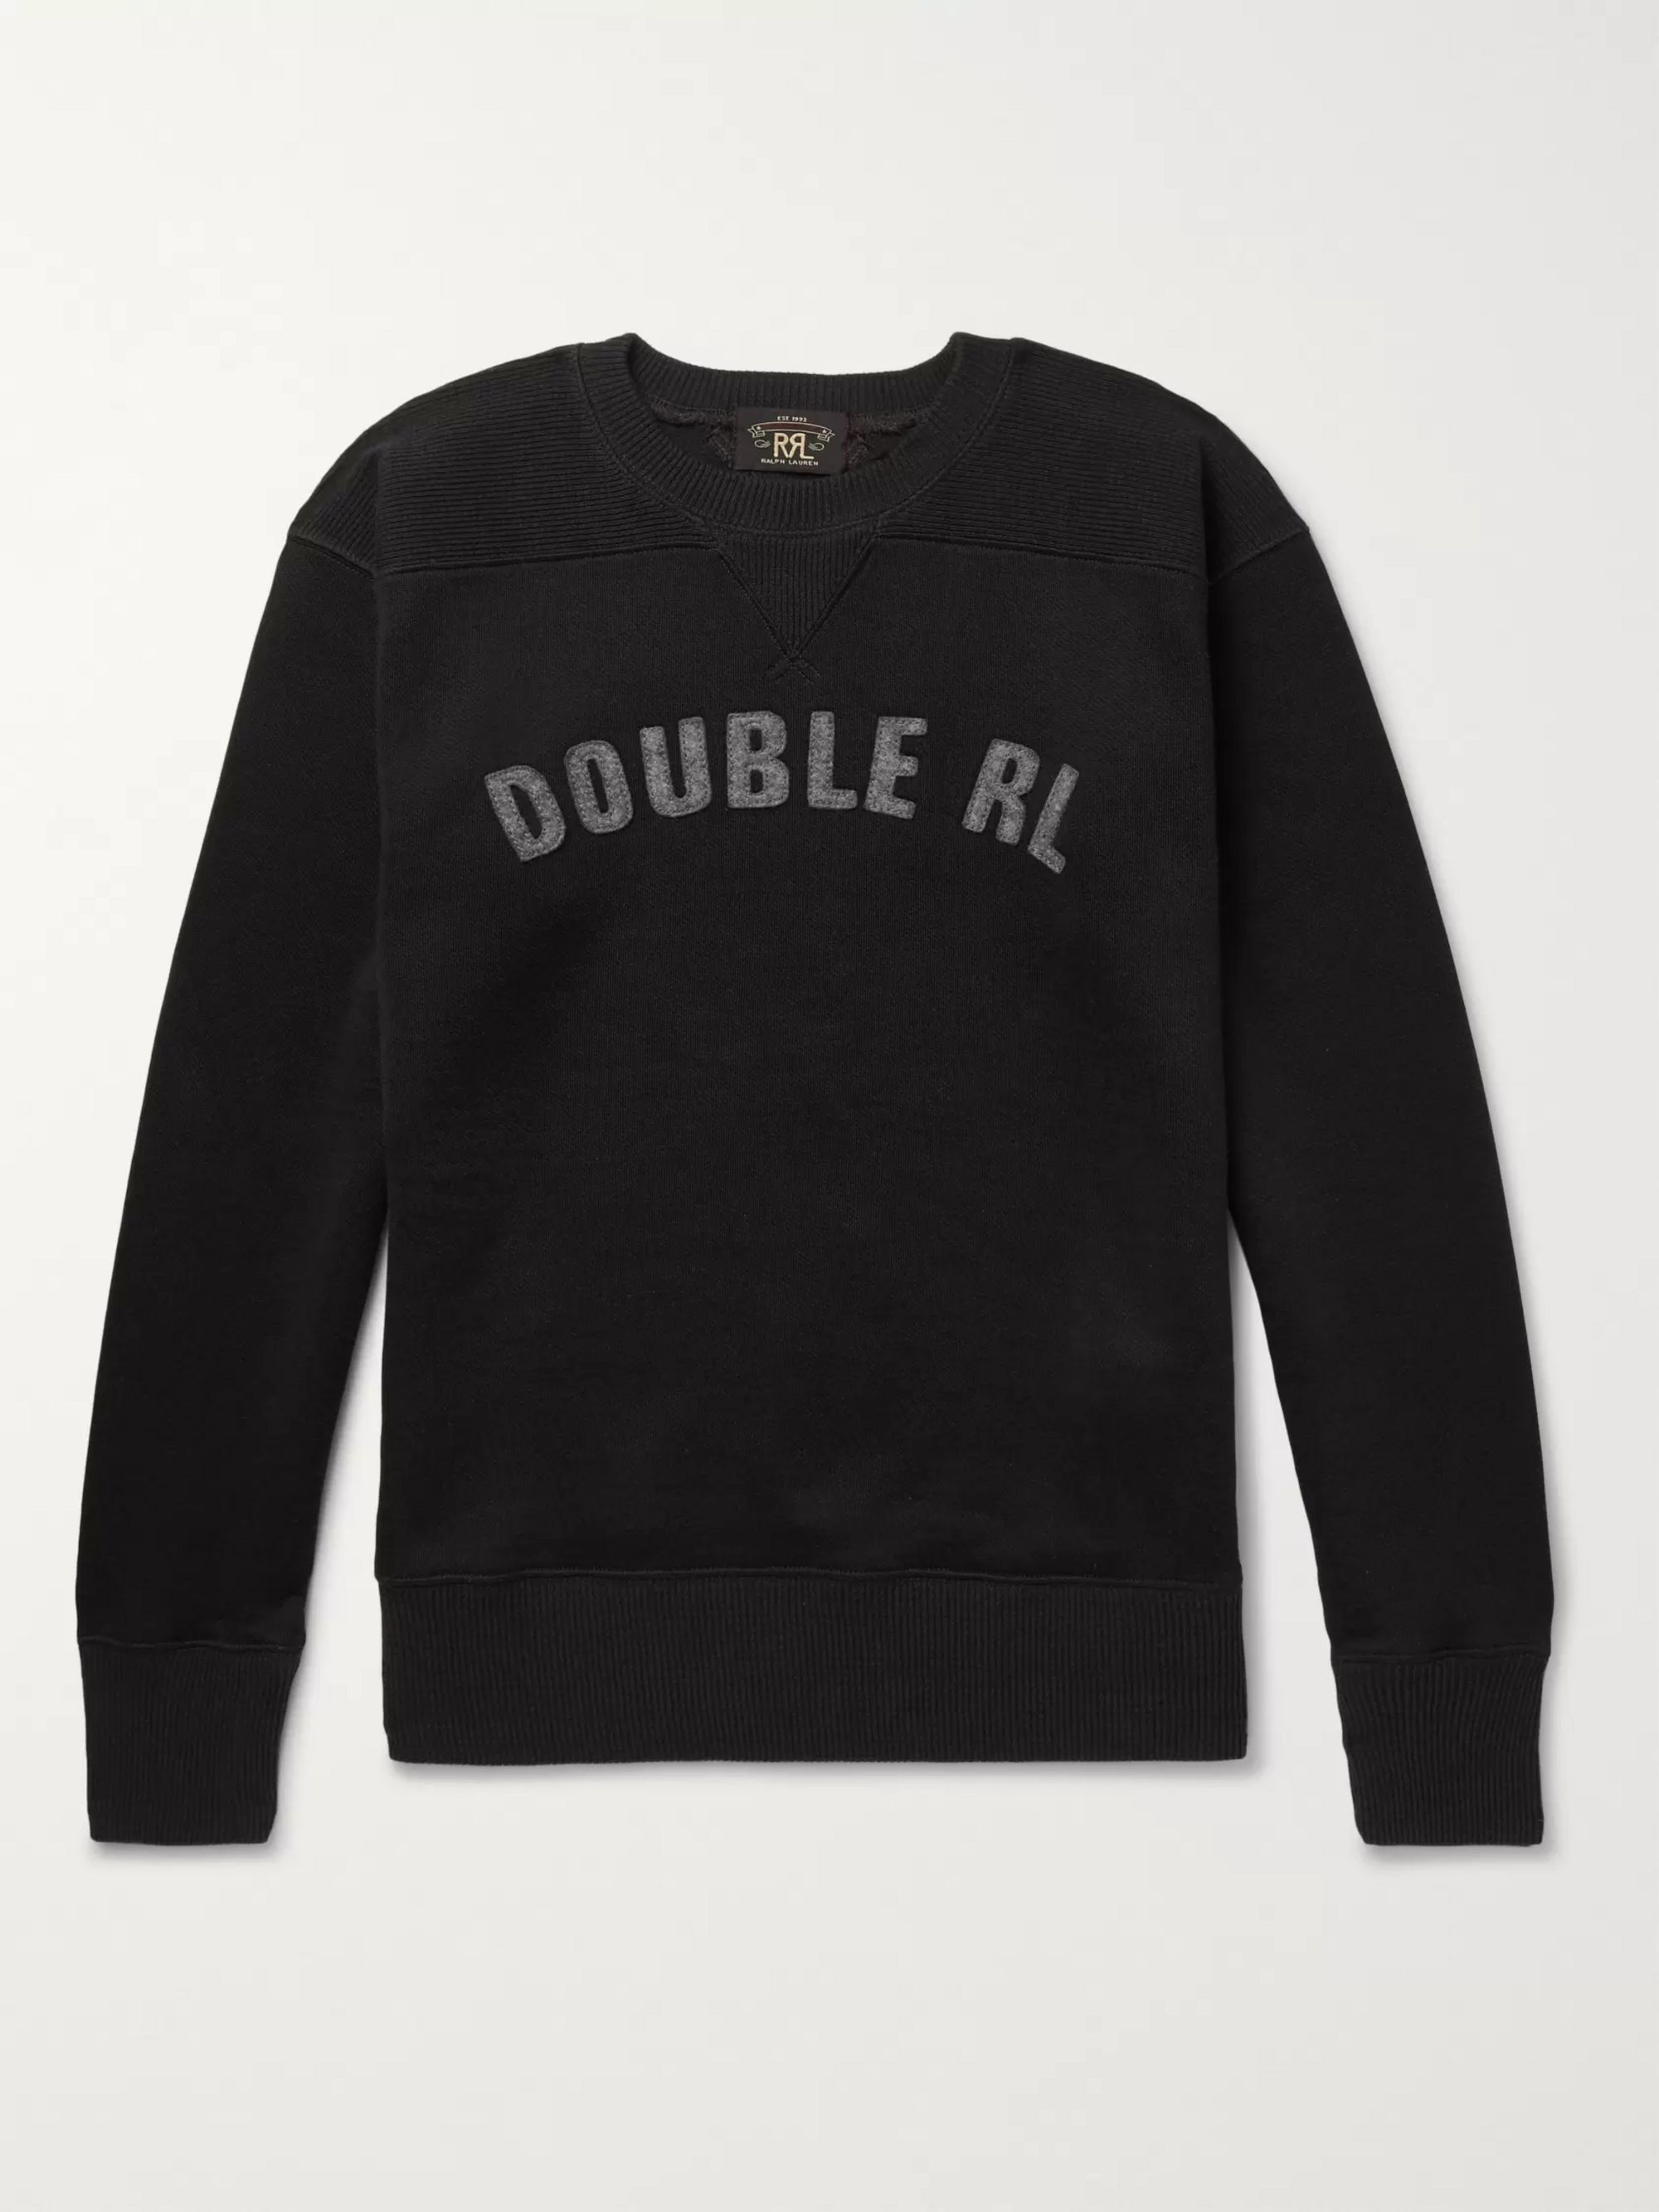 Logo Appliquéd Fleece Back Jersey Sweatshirt by Rrl